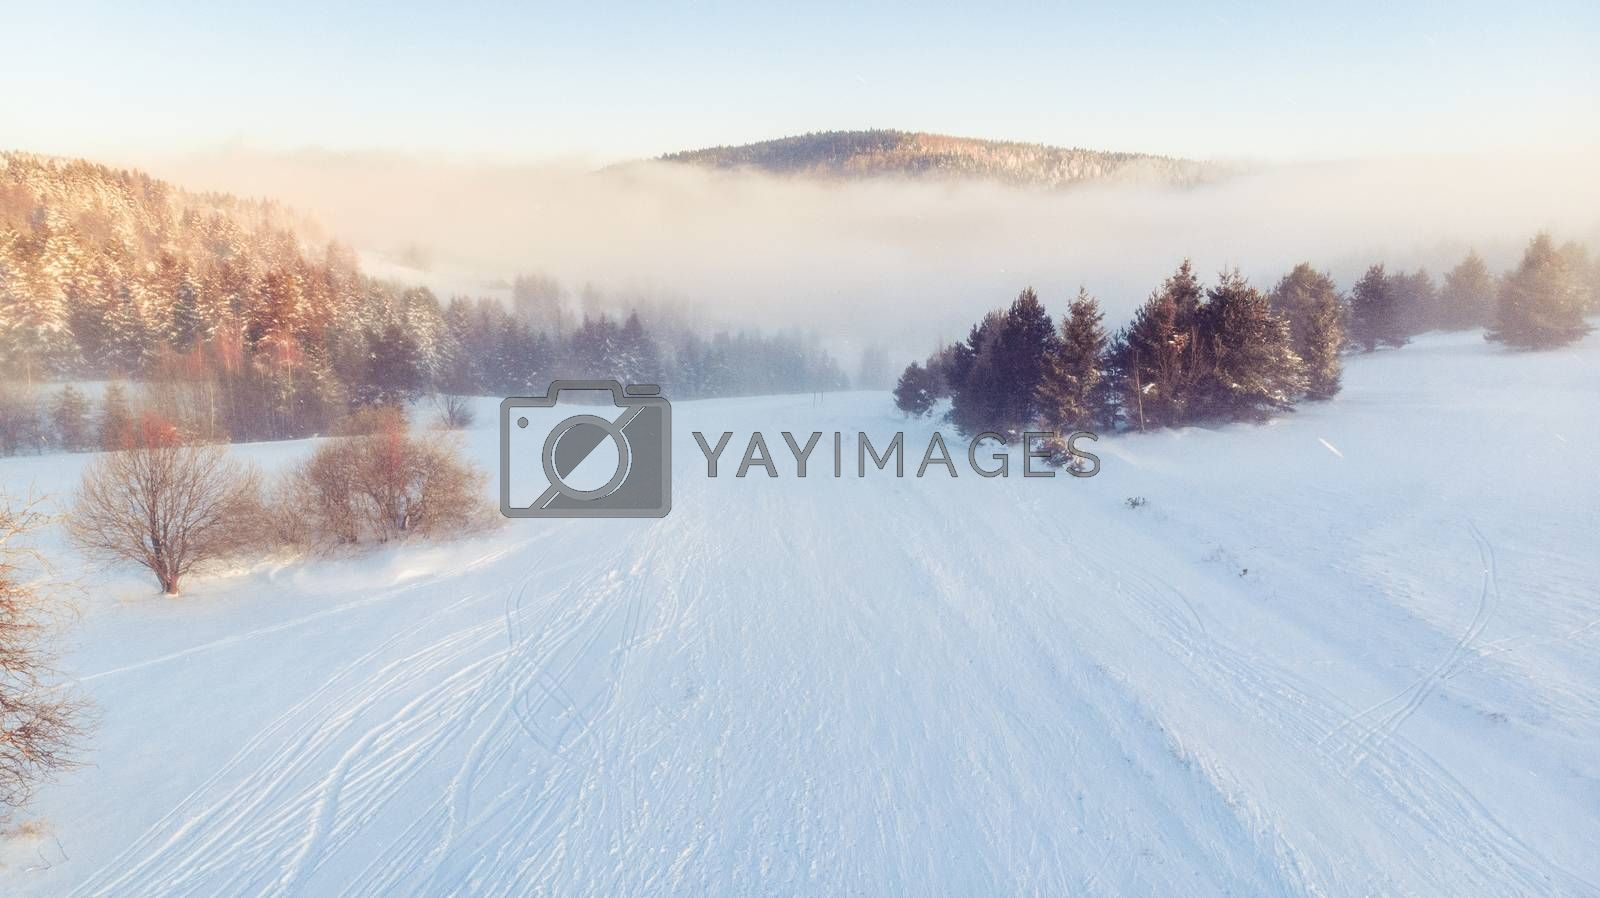 Cold Morning at Winter Season in Countryside at Sunrise.